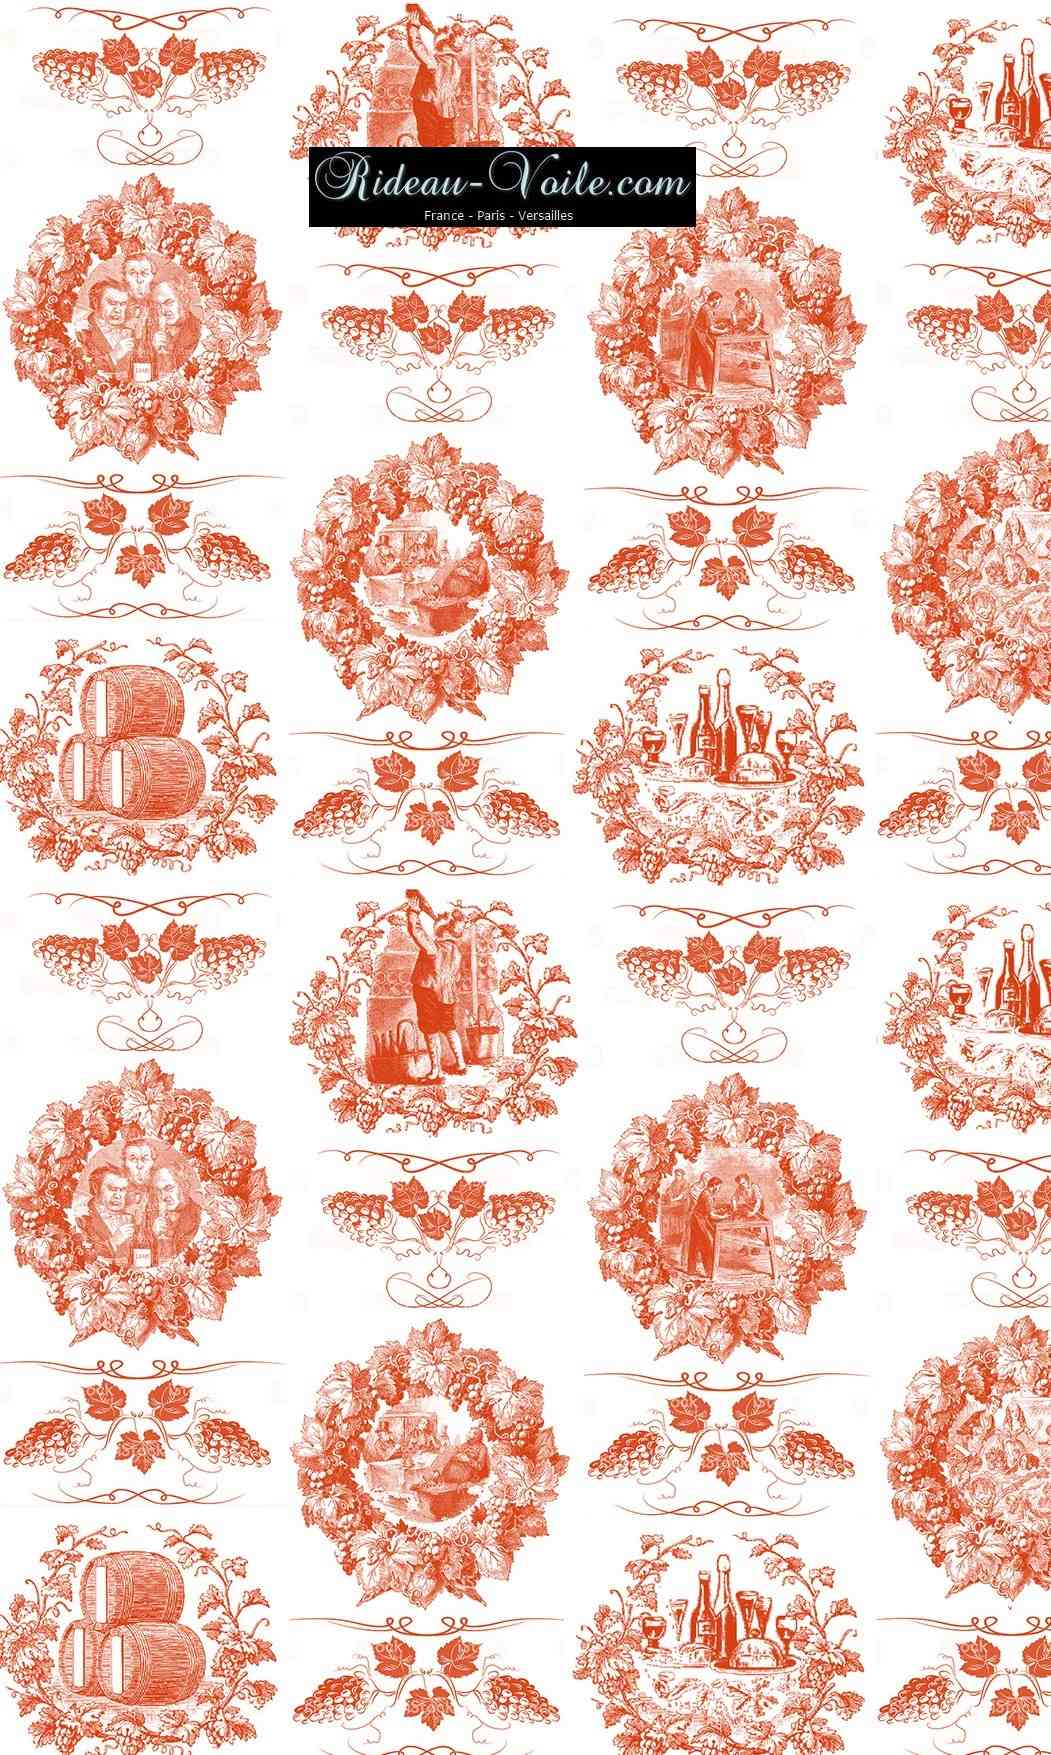 Toile de jouy tissu motif imprimé ameublement décoration tapisserie linge de maison housse coussin couette luxe lit fabric pattern printed home furnishing decoration tapestry linens cover cushion quilt luxury upholstery orange